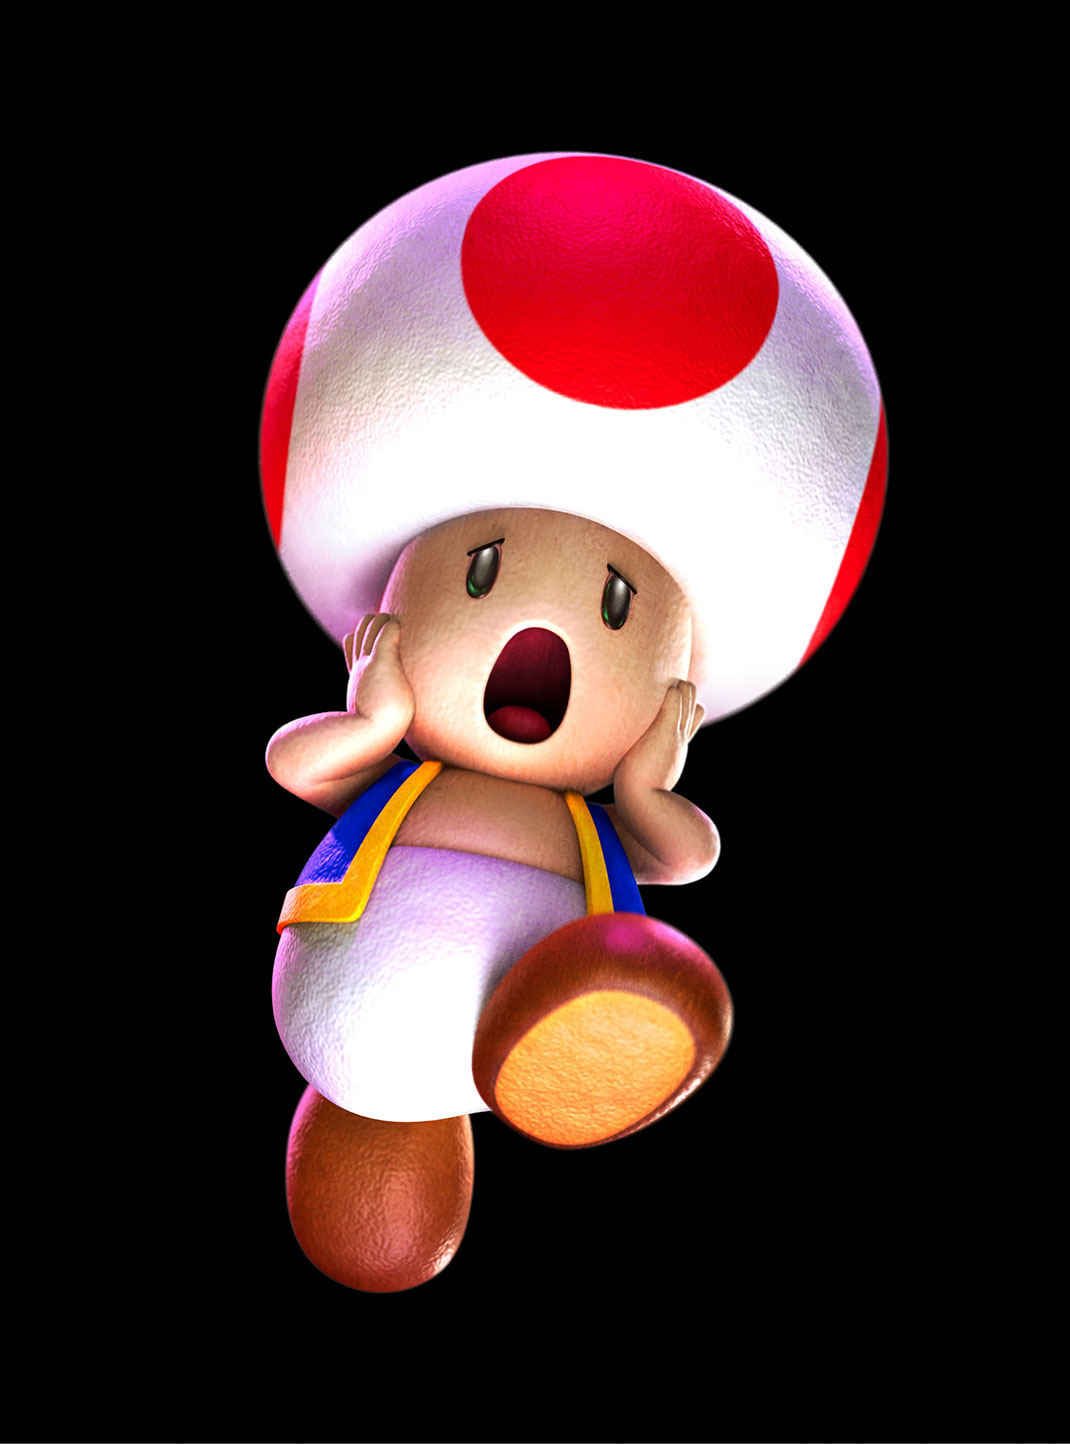 toad-personnage-mansion-peur